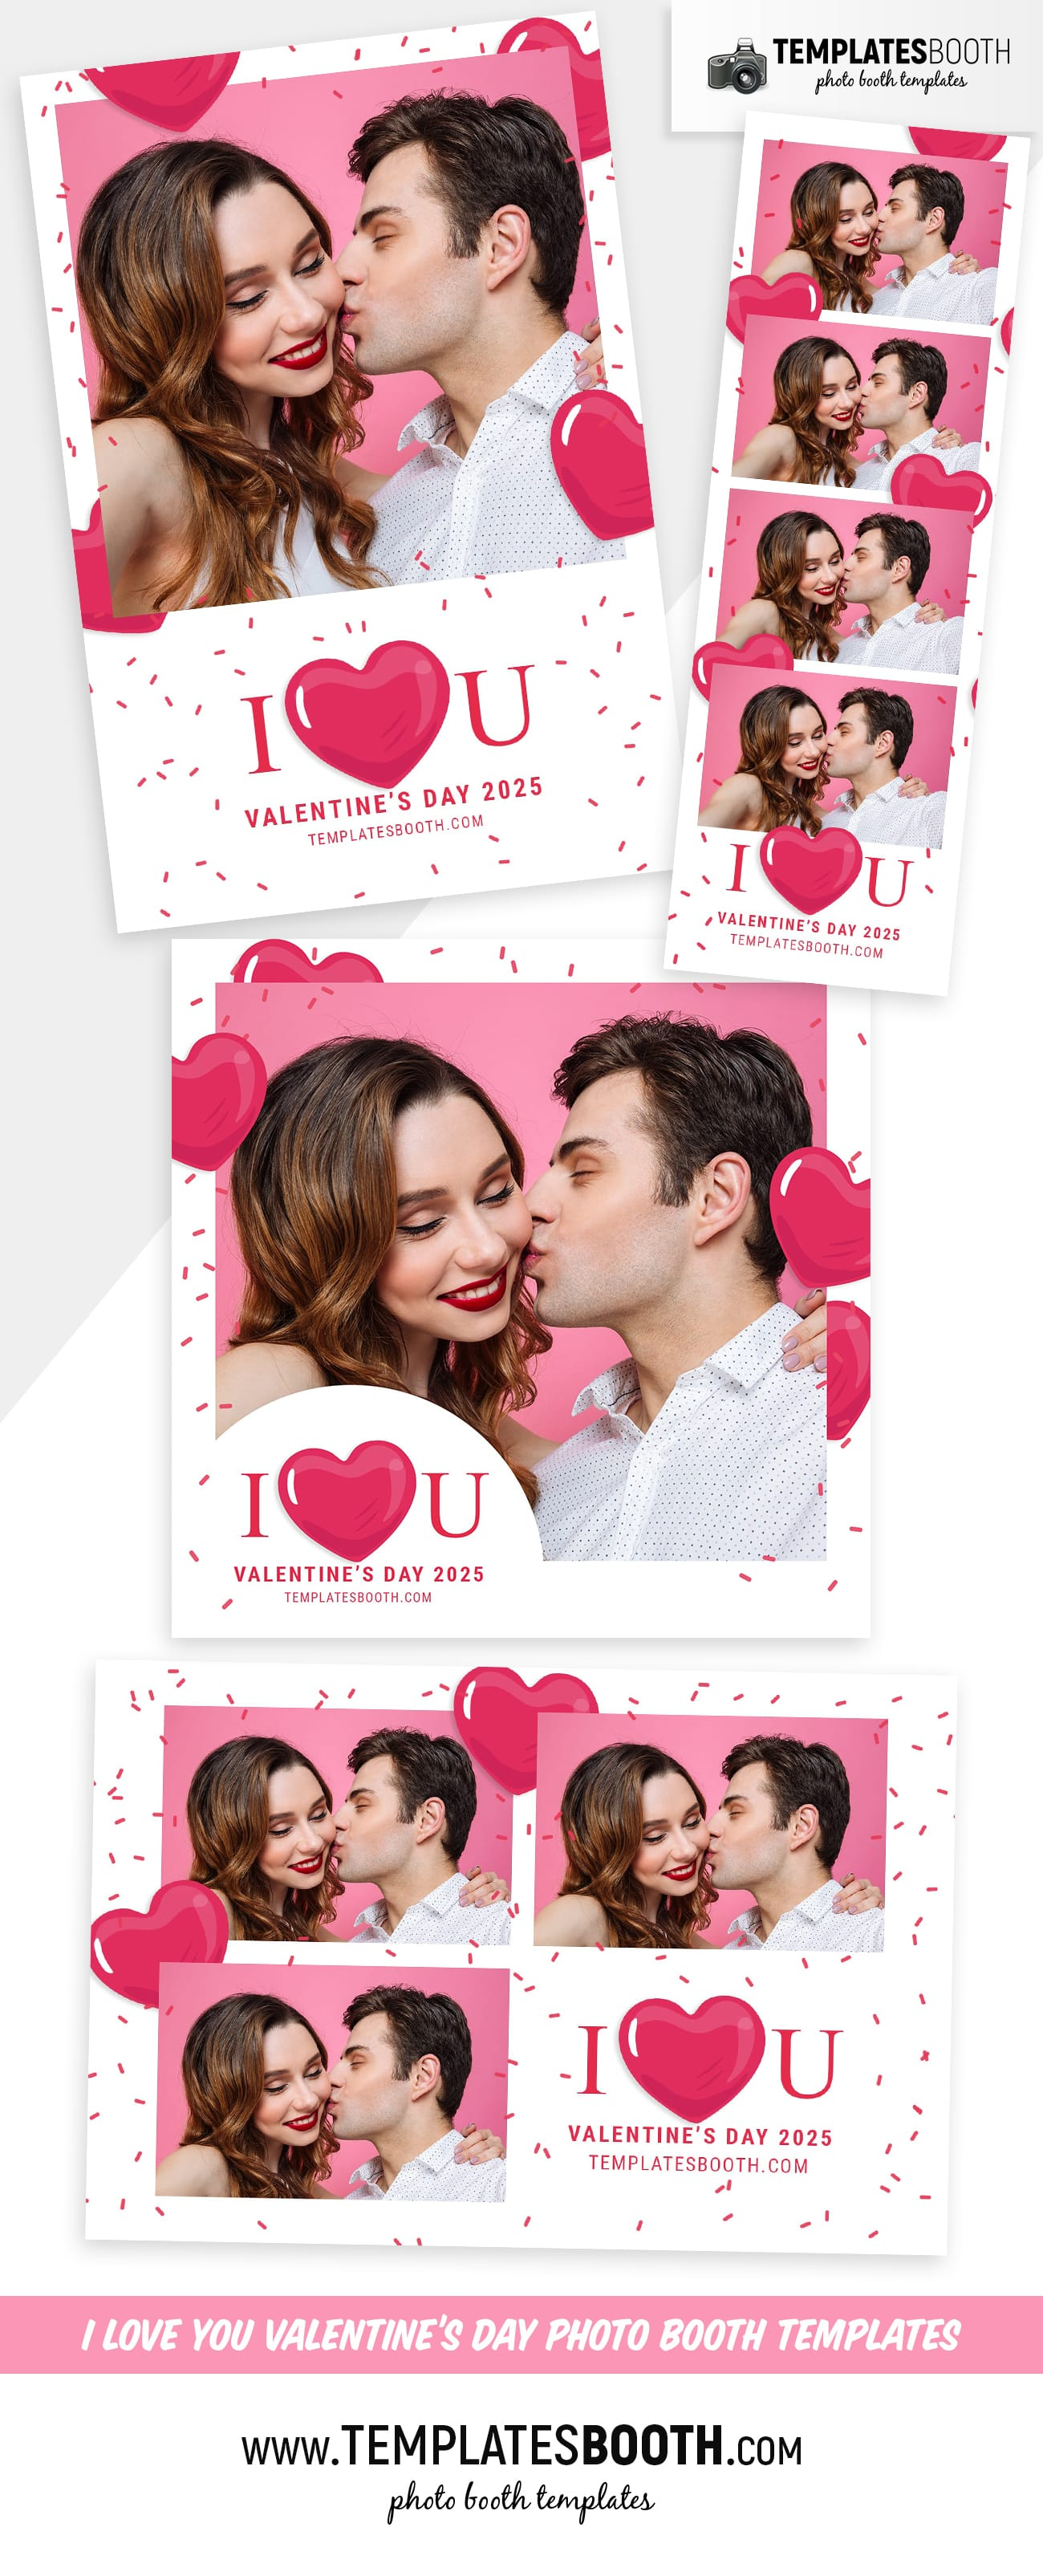 I Love You Valentine's Day Photo Booth Template (full preview)